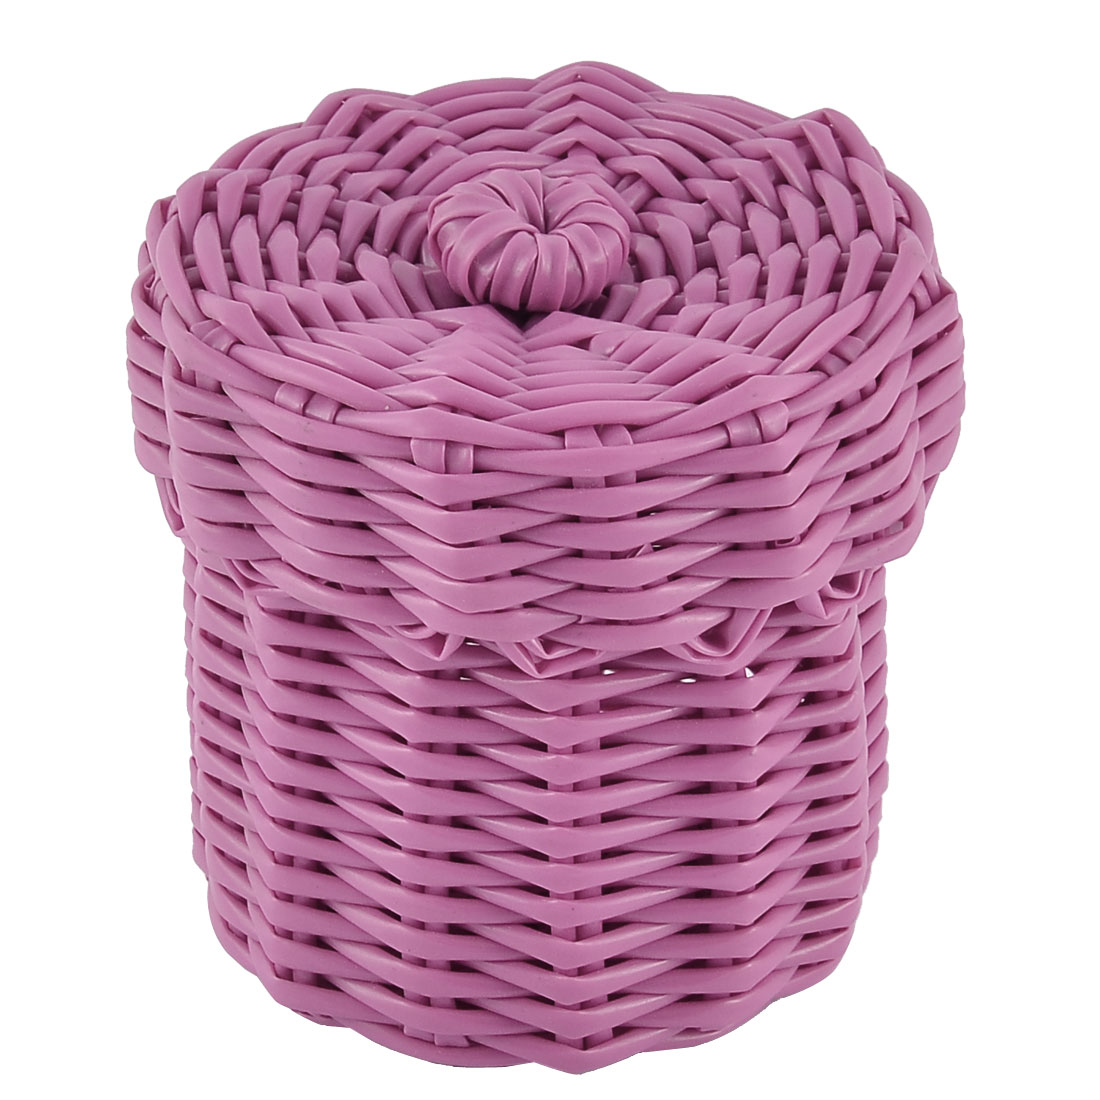 Home Office Plastic Knit Gathering Settle Storage Box Case Basket w Lid Hot Pink